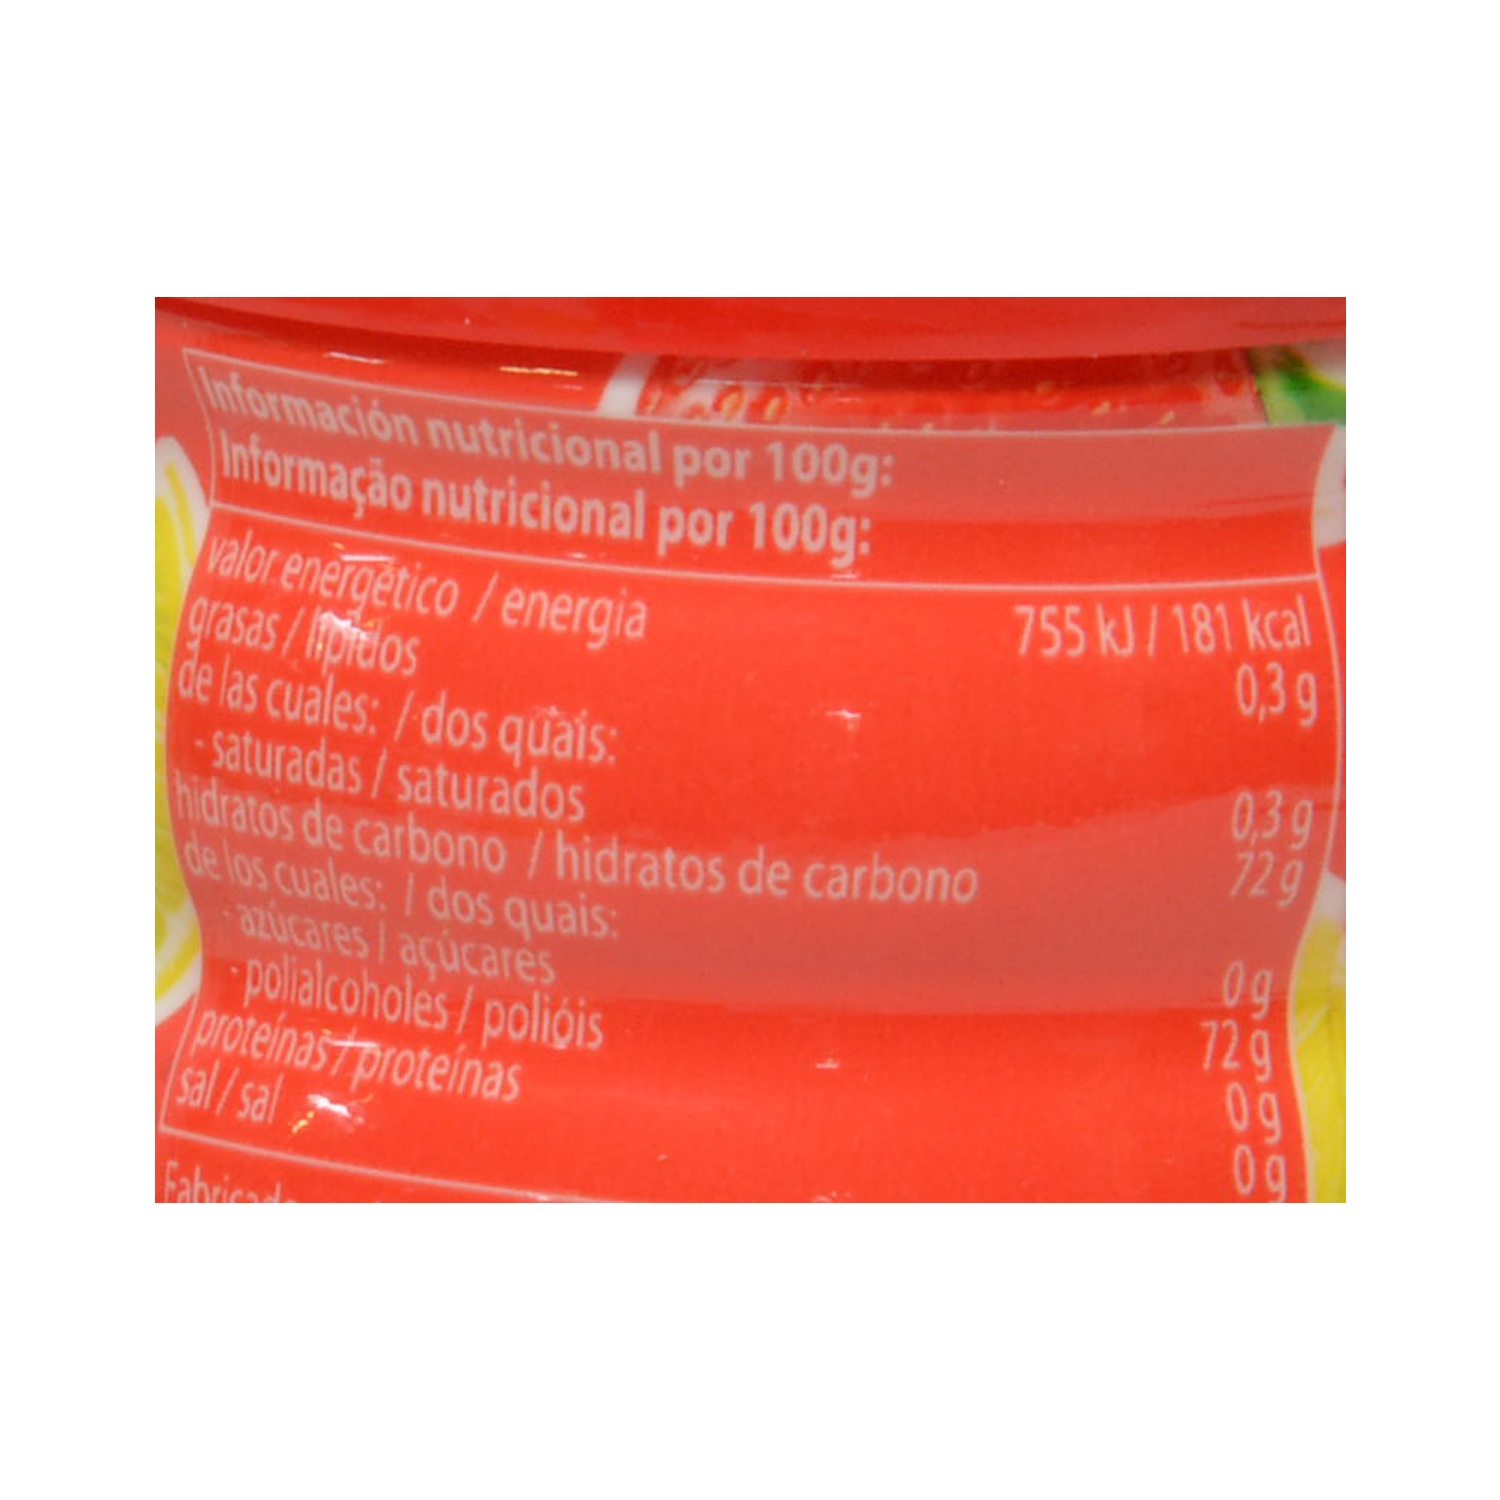 Chicles sabor frutas silvestres Full Fruit Mentos 60 g. - 2